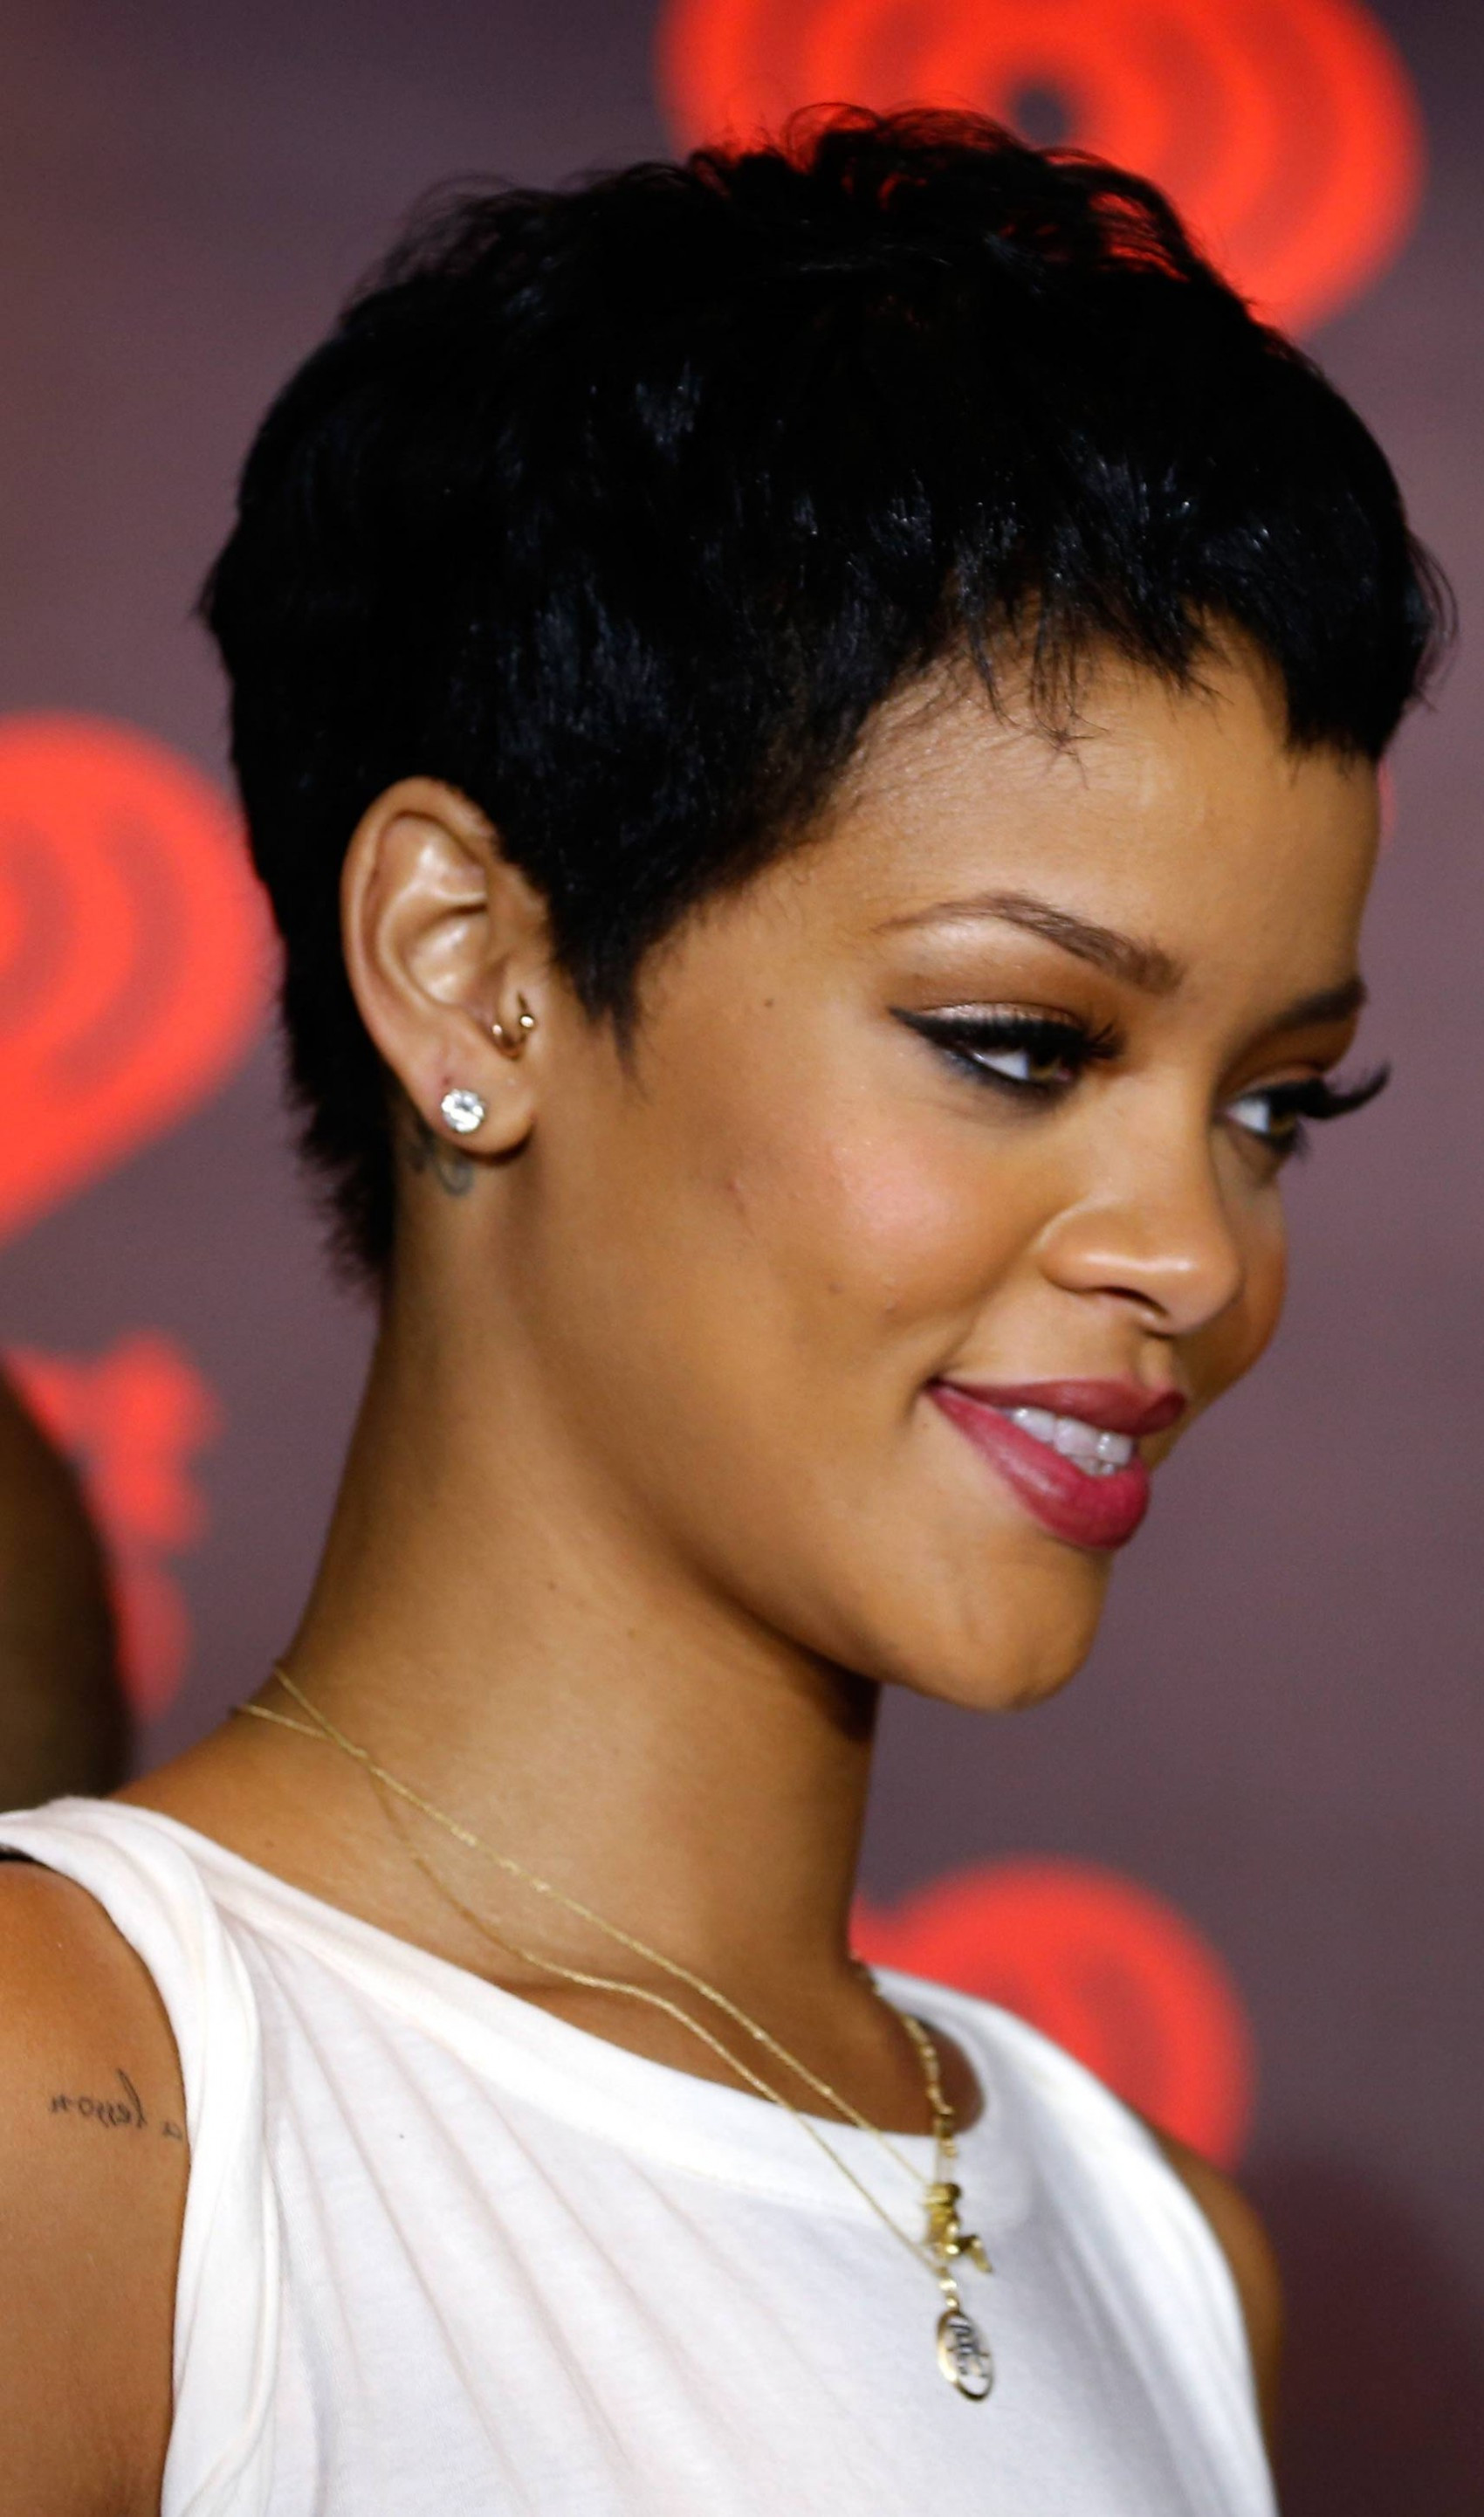 Best ideas about Short Hairstyles For Short Hair . Save or Pin 30 Best Short Hairstyles For Black Women Now.